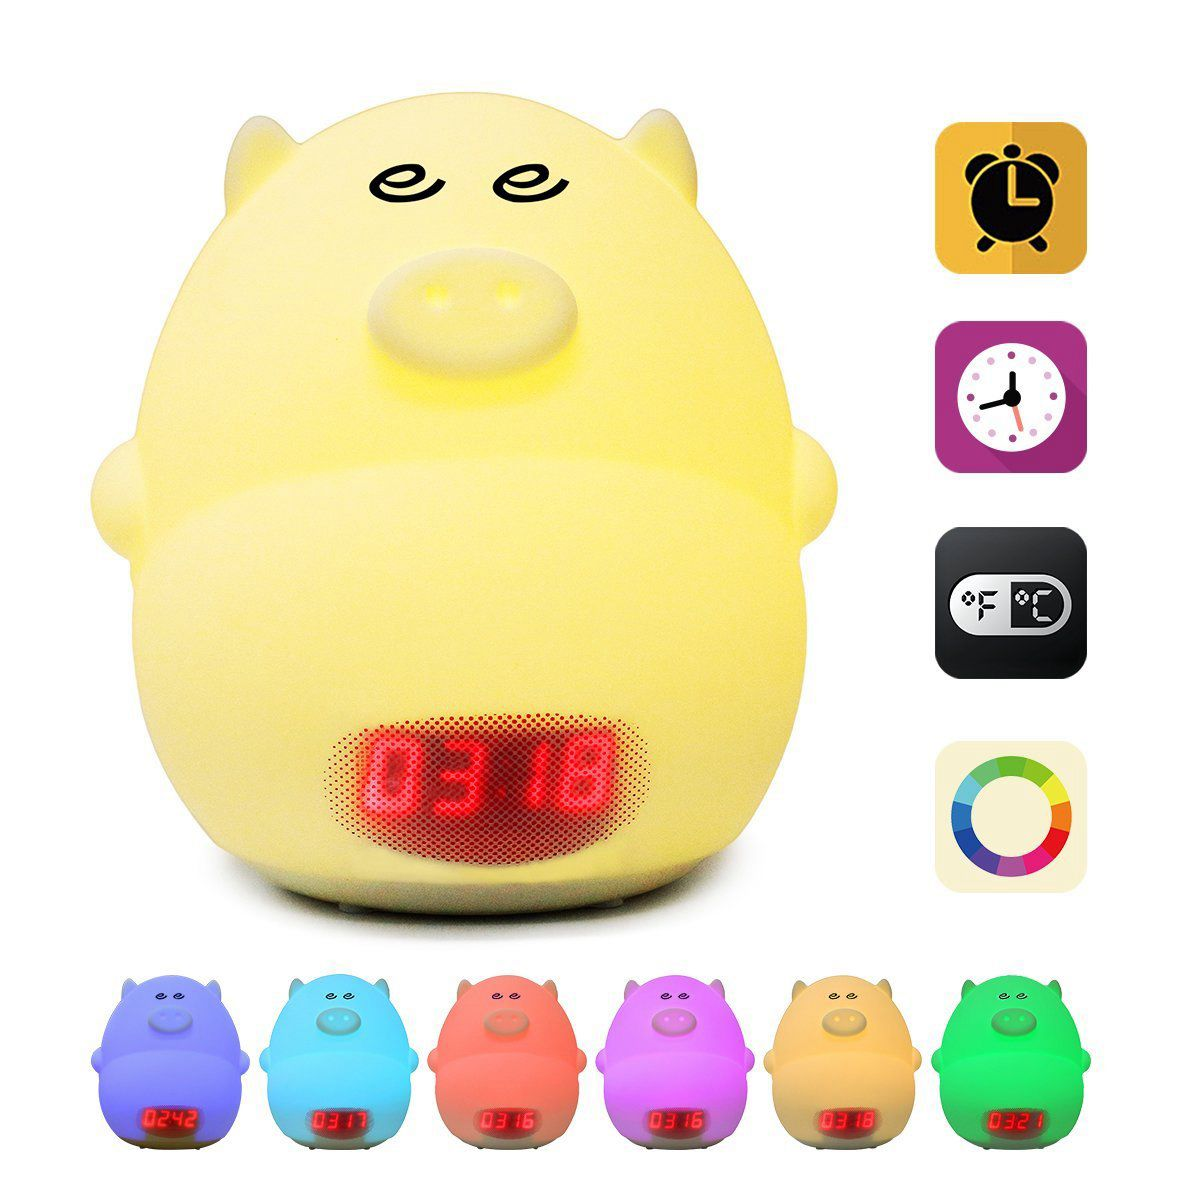 Promotion! Night Light Alarm Clock for Kids Cute Pig Clock USB LED Lights Silicone Baby Lamp Color Changing 2 Alarms, 3 Sounds